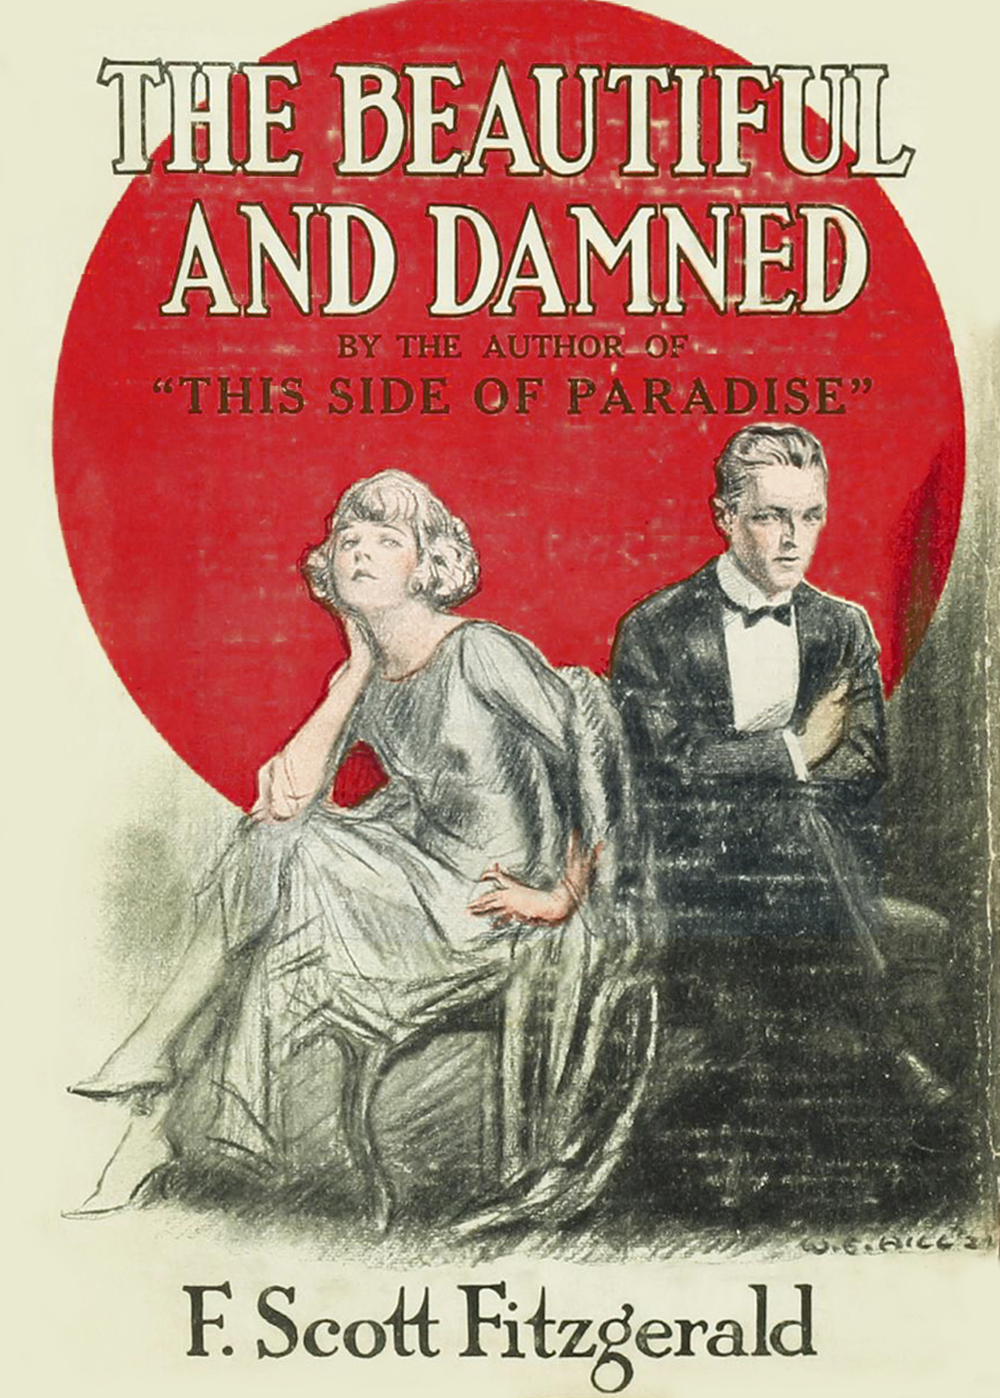 Original cover for F. Scott Fizgerald's The Beautiful and the Damned (1922). Wikimedia Commons.